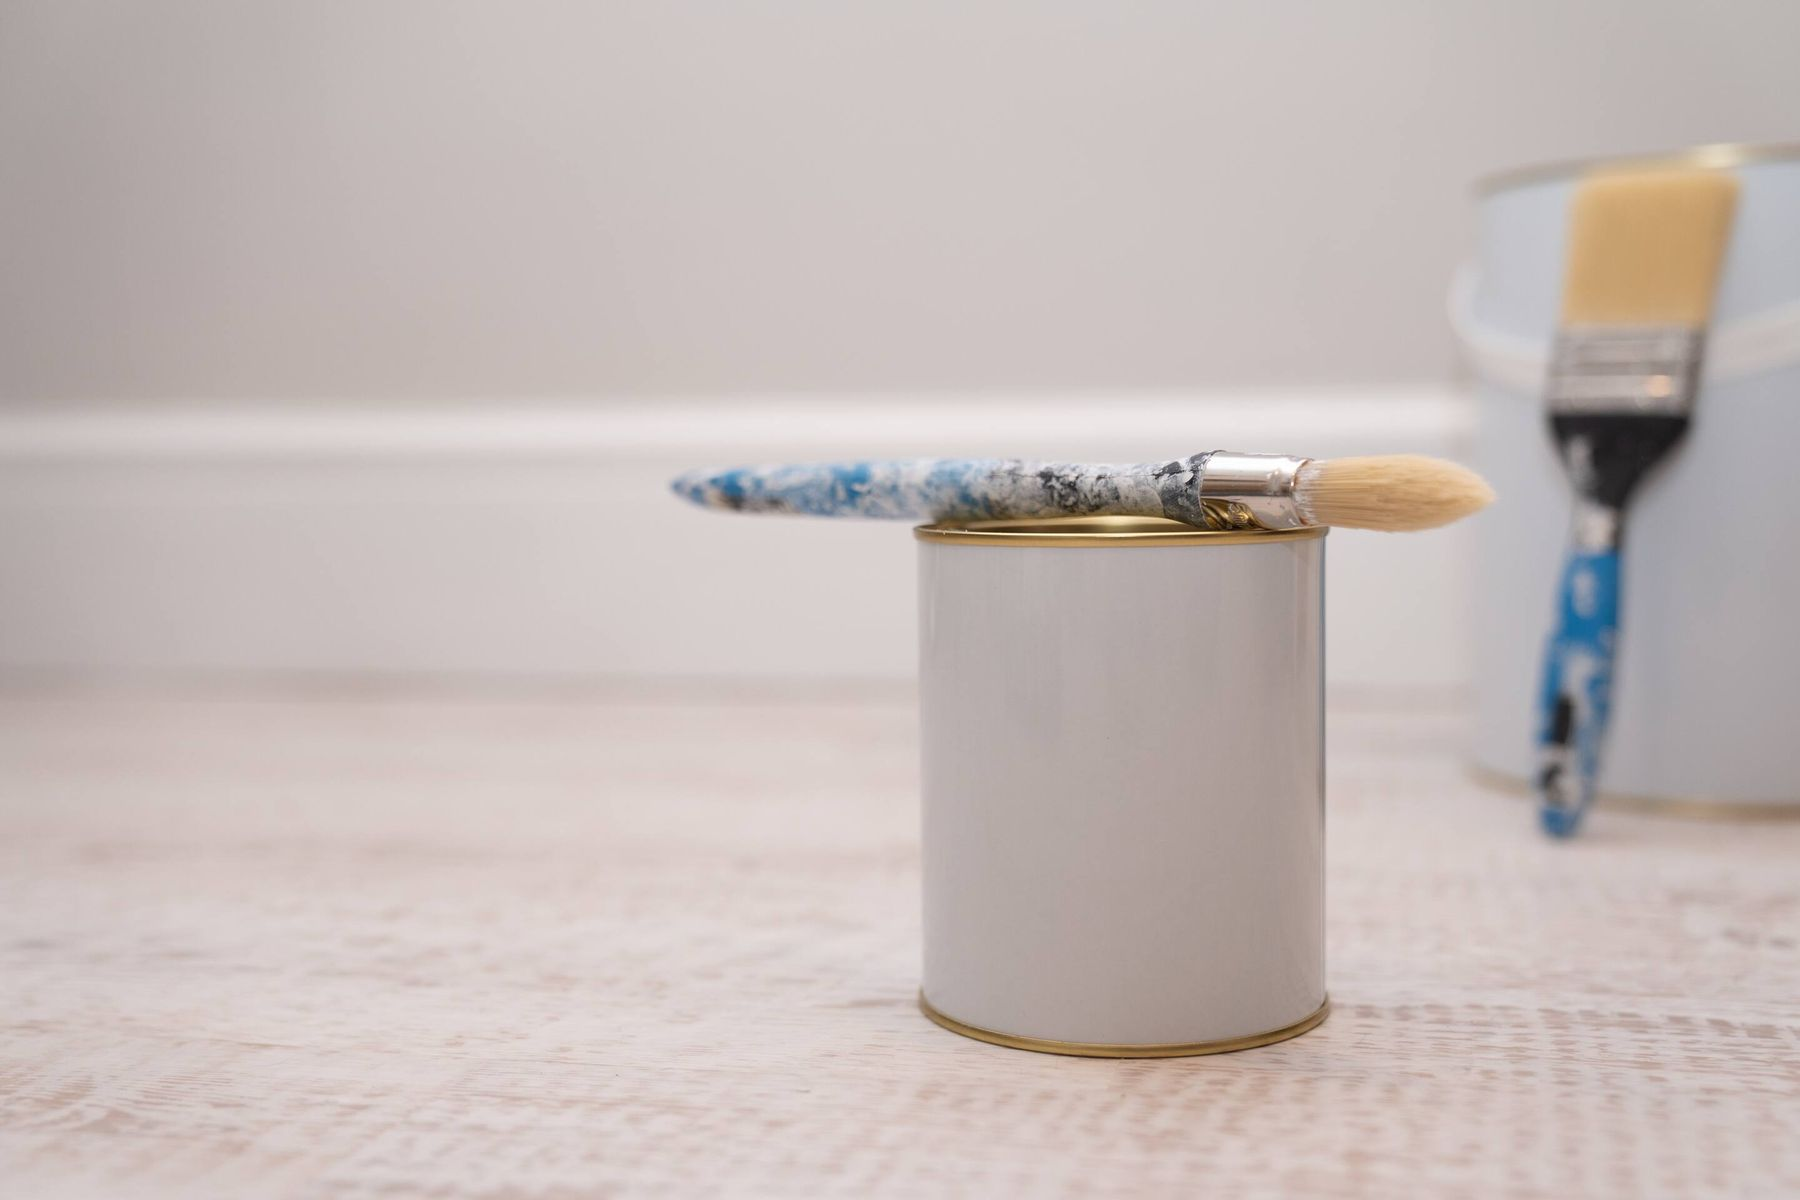 paint cans and brushes on the floor by the wall